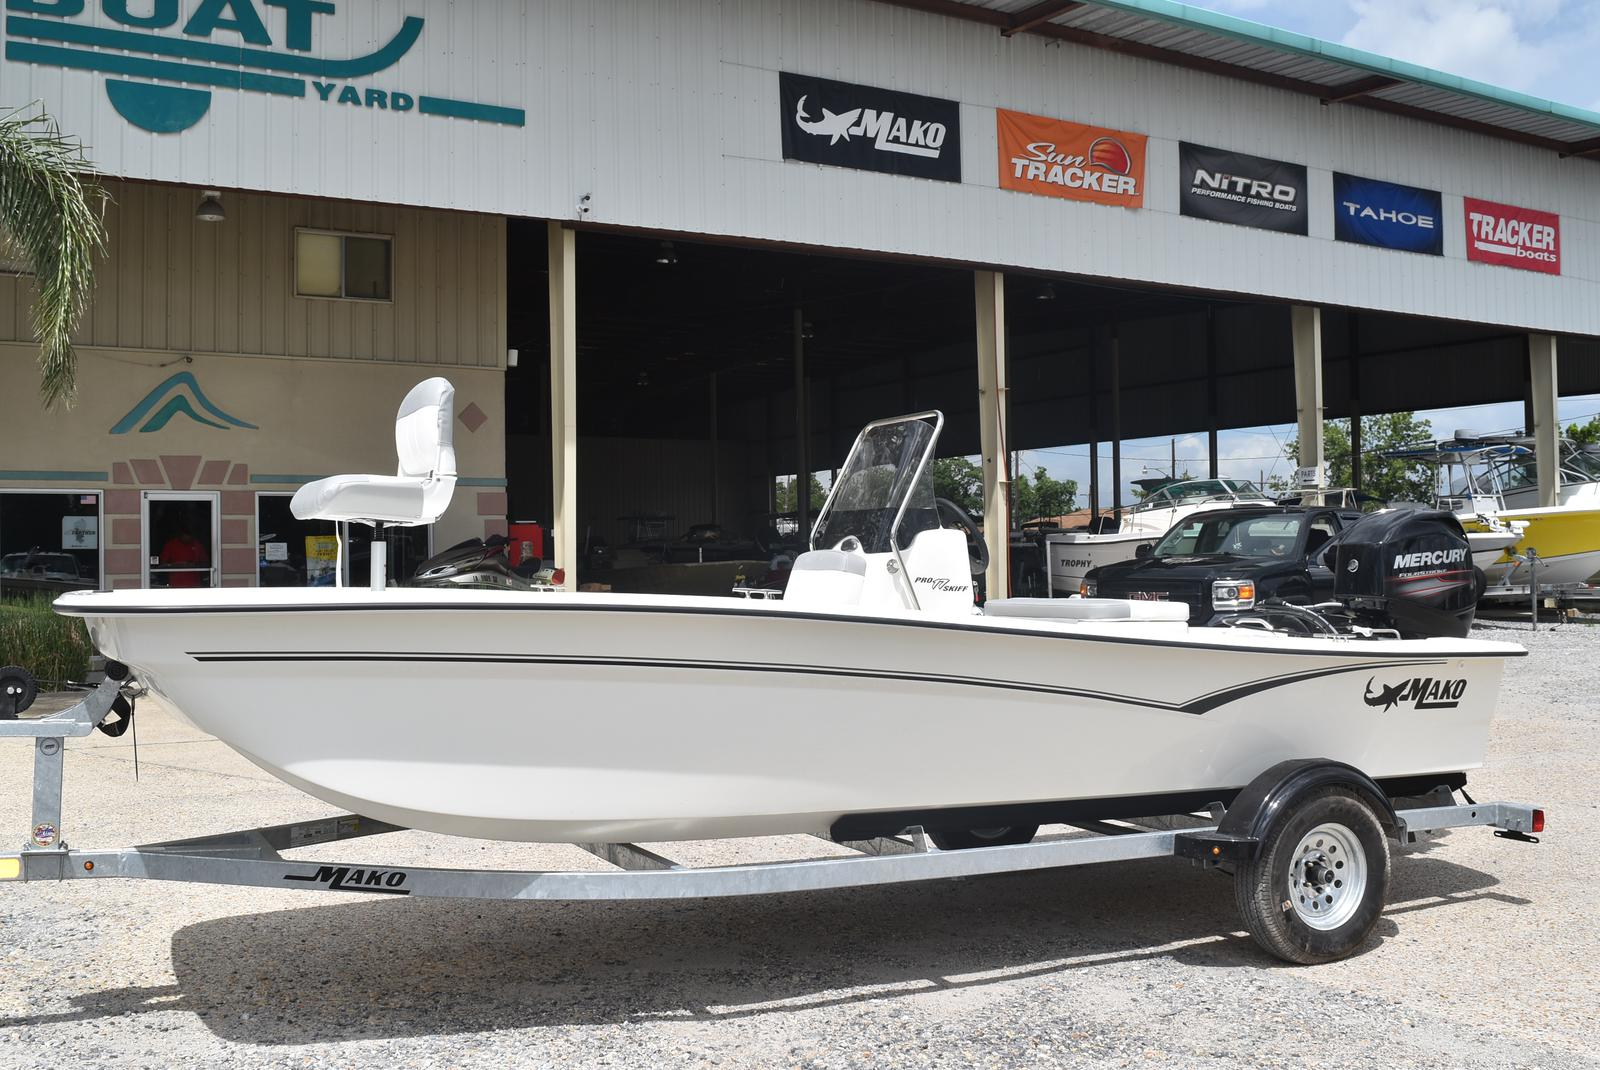 2020 Mako boat for sale, model of the boat is Pro Skiff 17, 75 ELPT & Image # 104 of 702